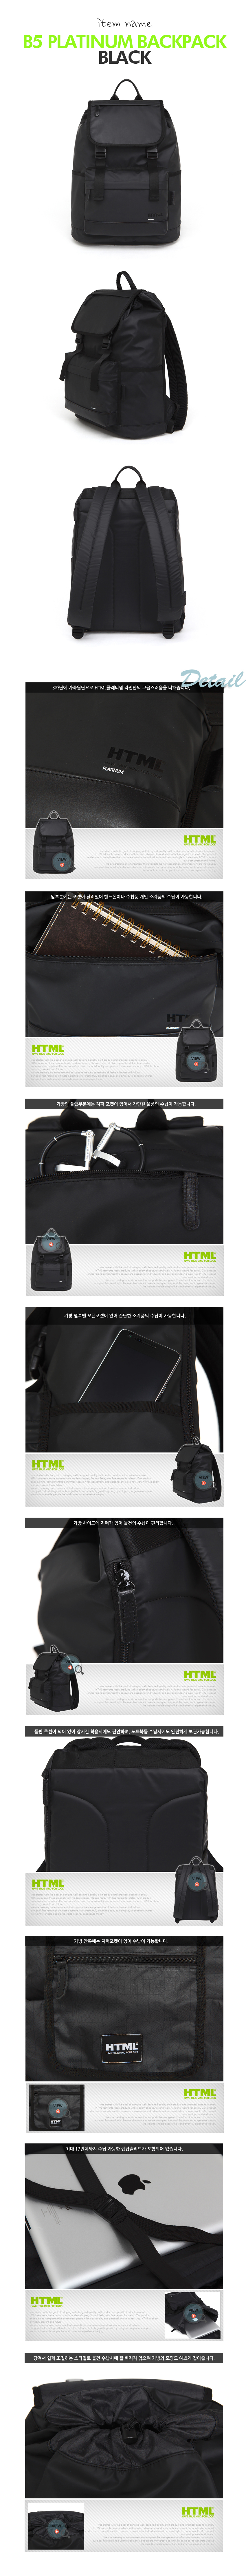 HTML - B5 PLATINUM backpack (Black)